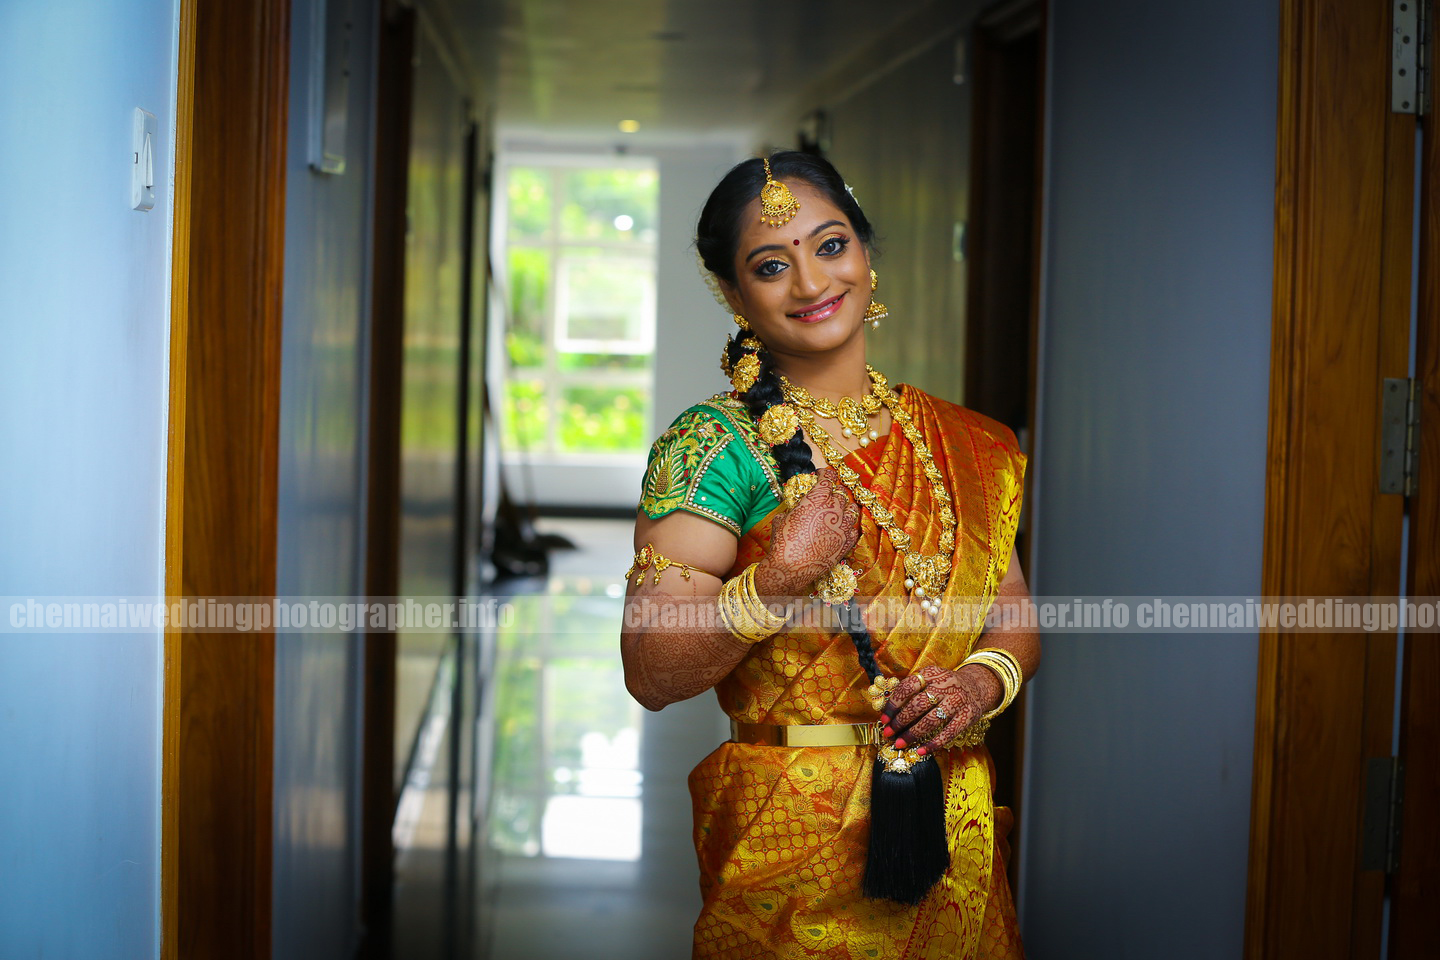 chennai weddings candid photography